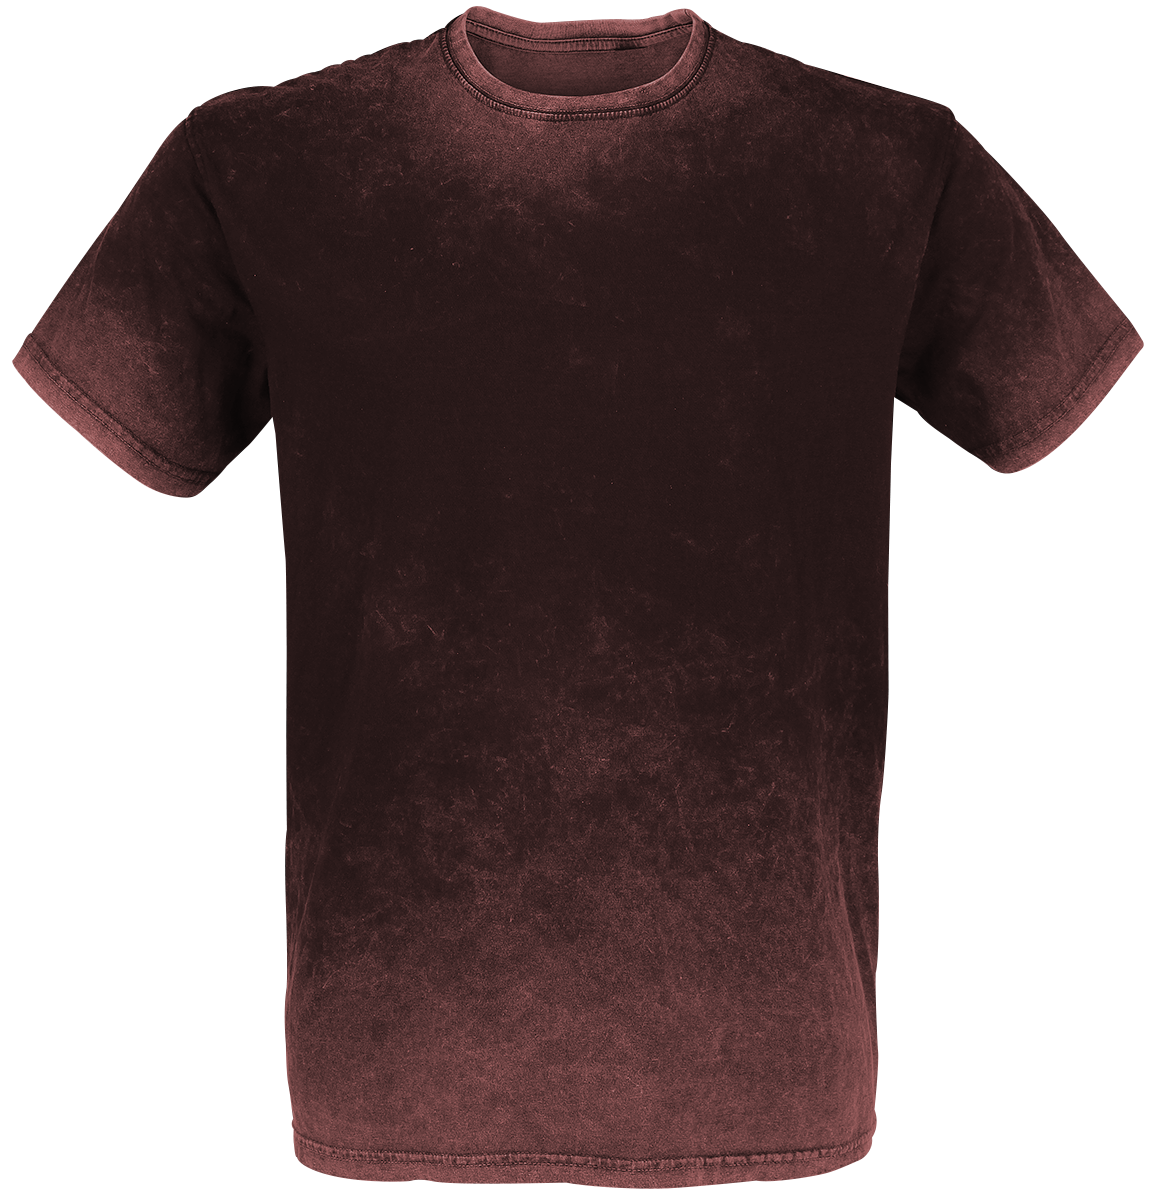 Outer Vision - Retro Stone - T-Shirt - burgundy image